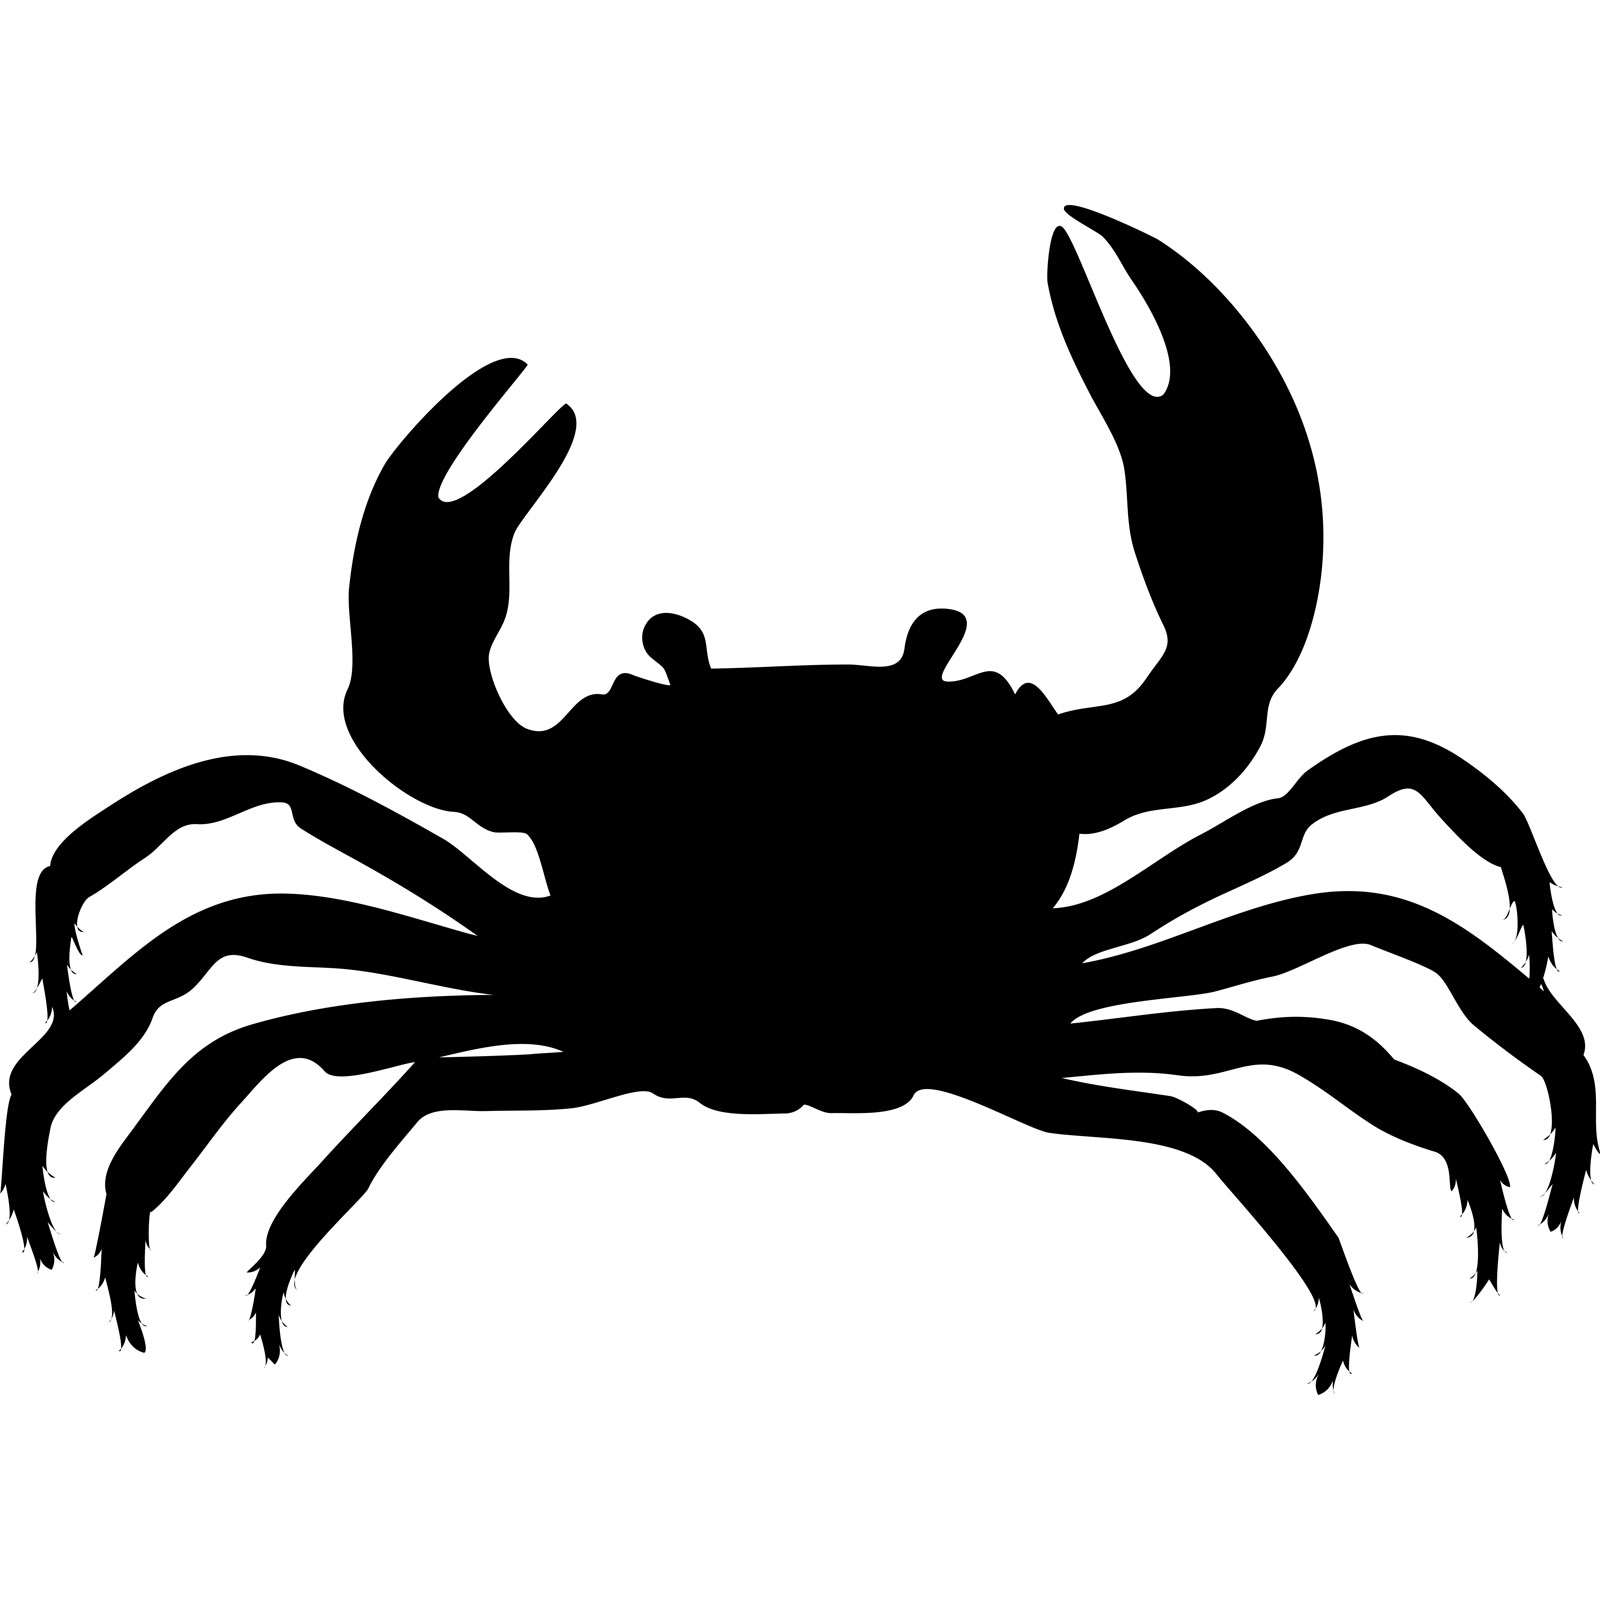 Crab Silhouette on Clip Art Christmas Tree Outline